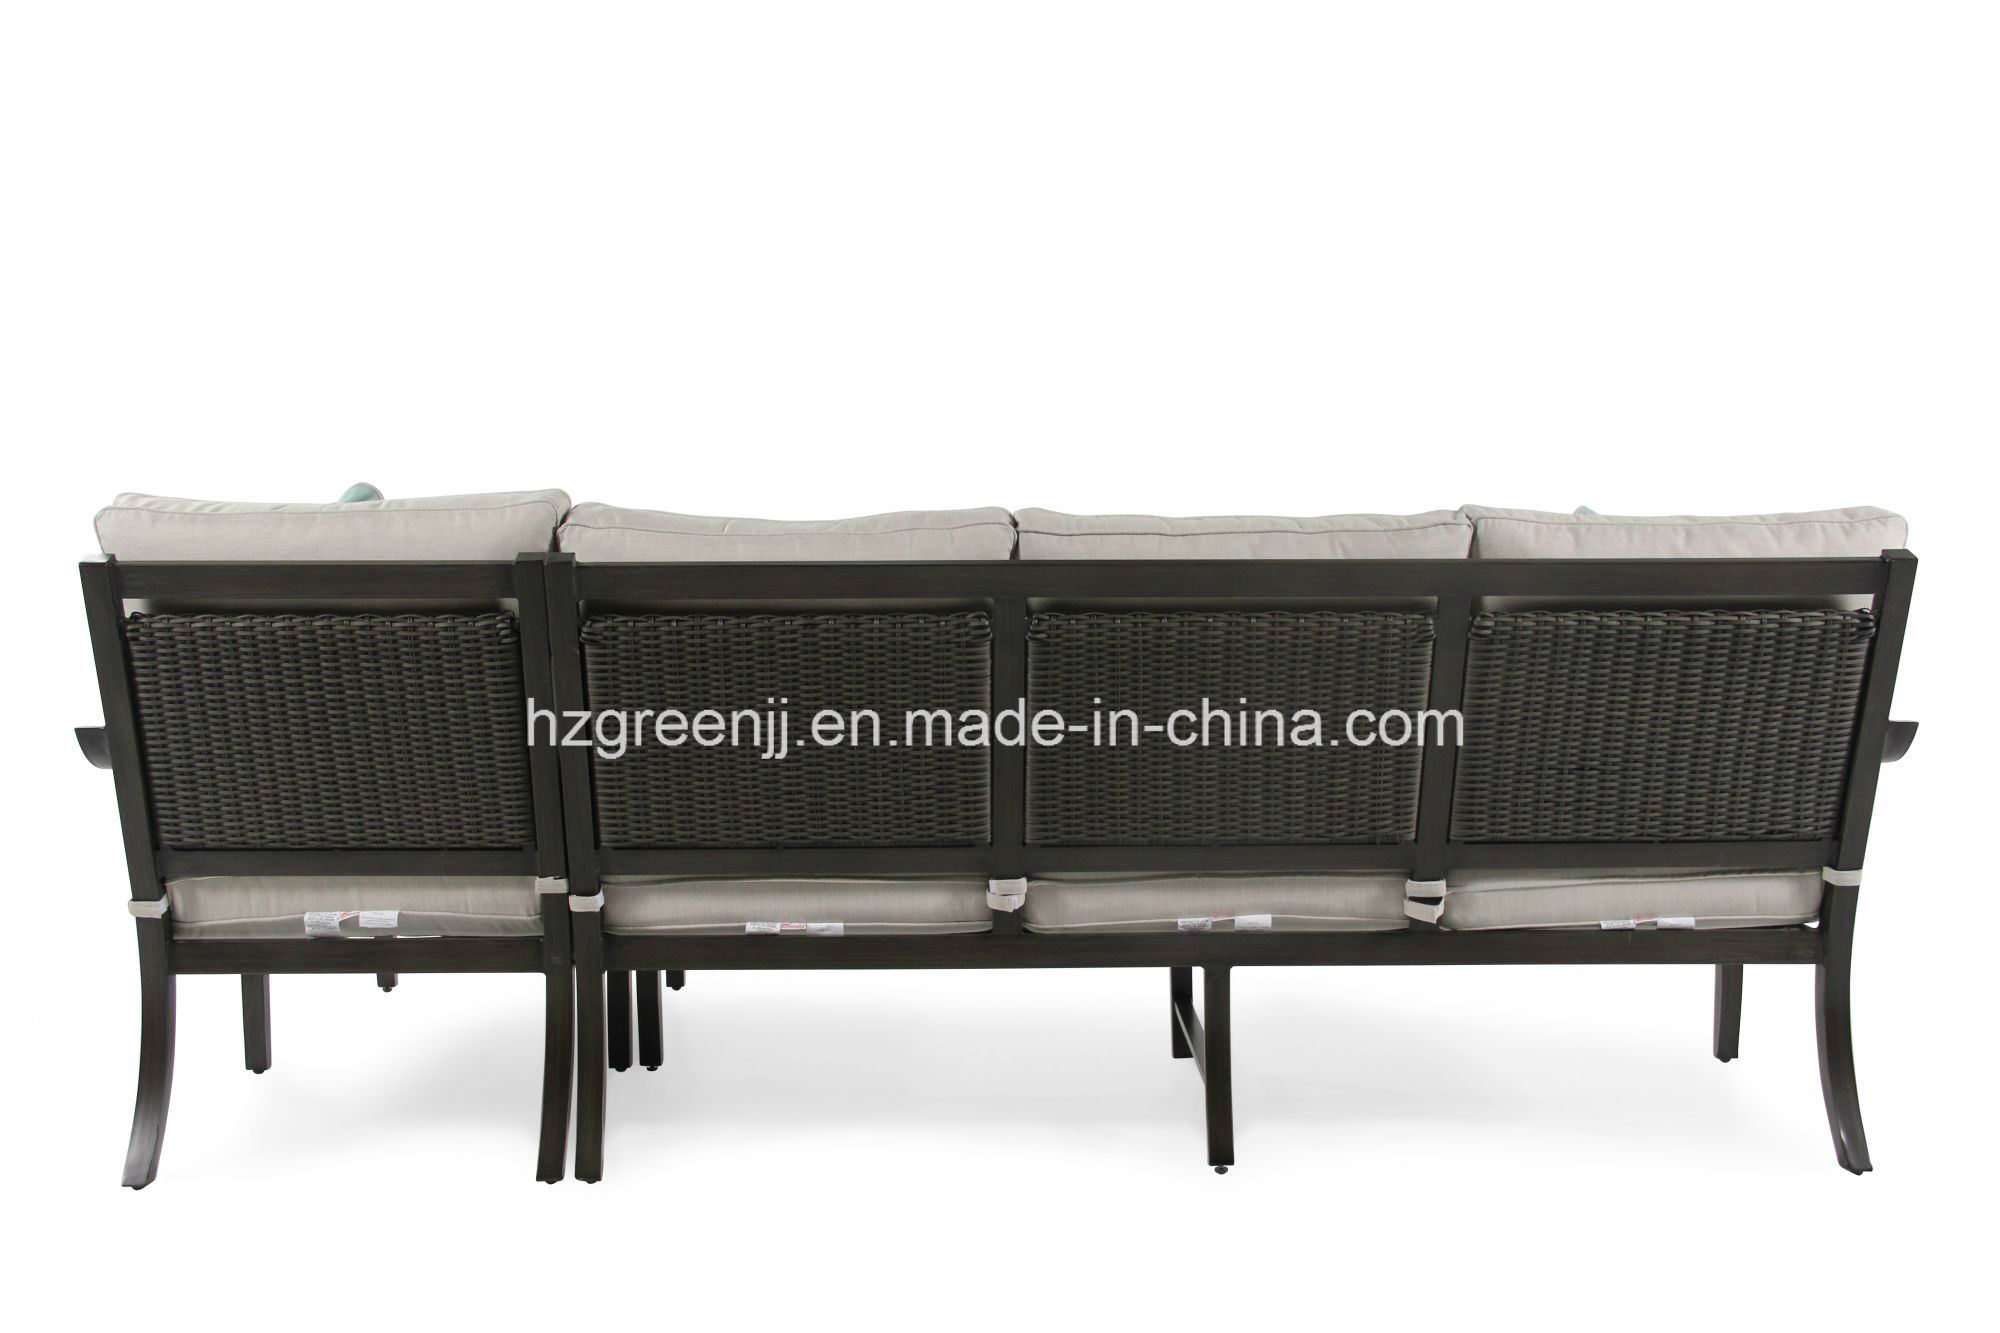 Aluminium Power Coating 4 Pieces Lounger Sofa Set Garden furniture